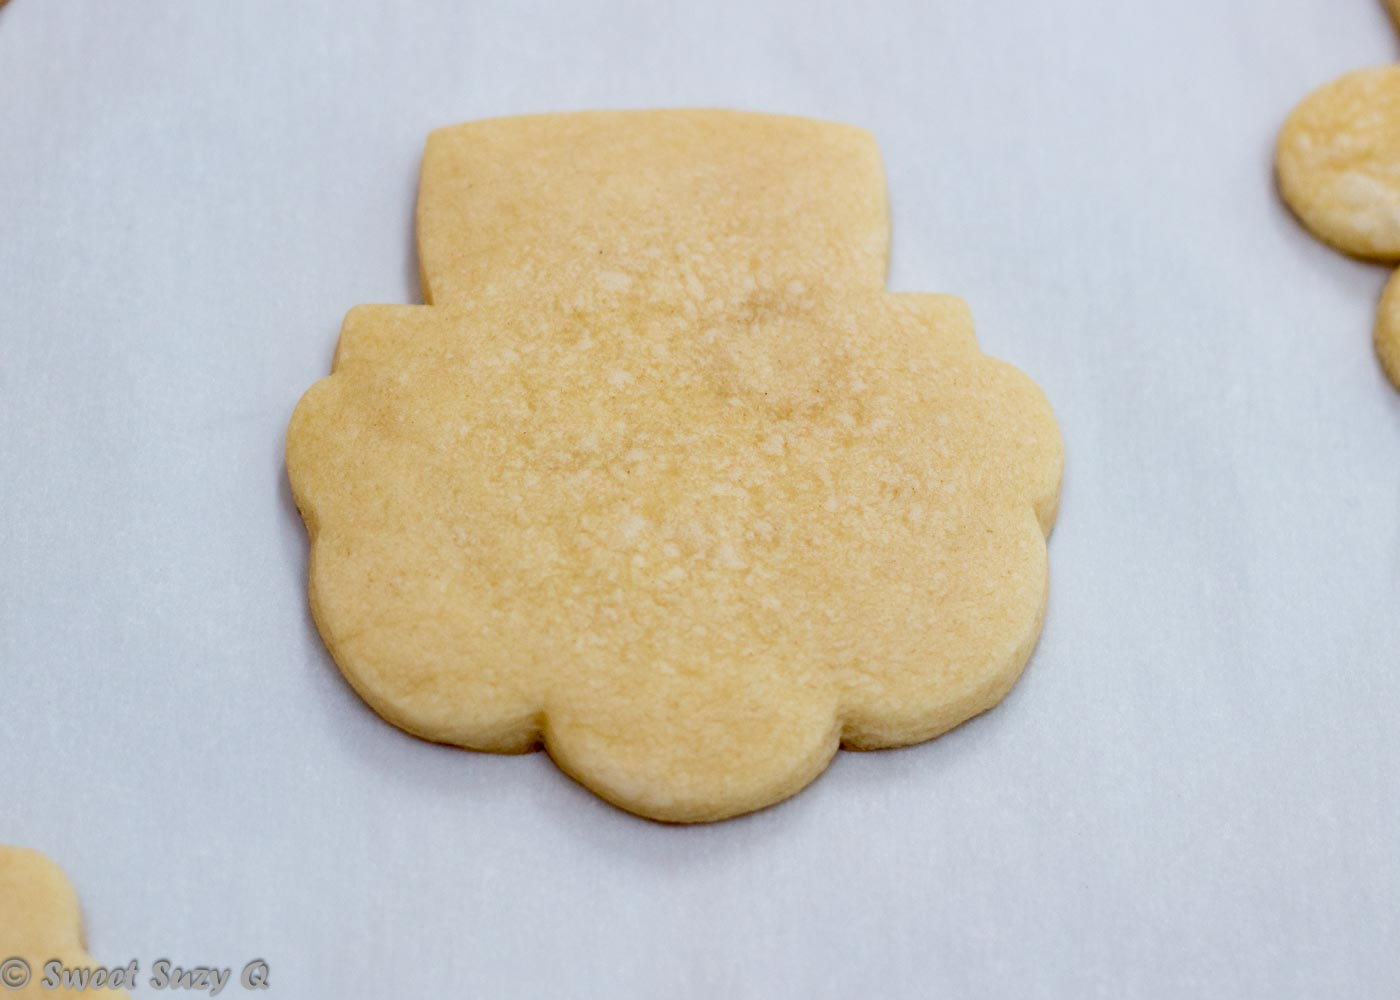 Baked leprechaun cookie